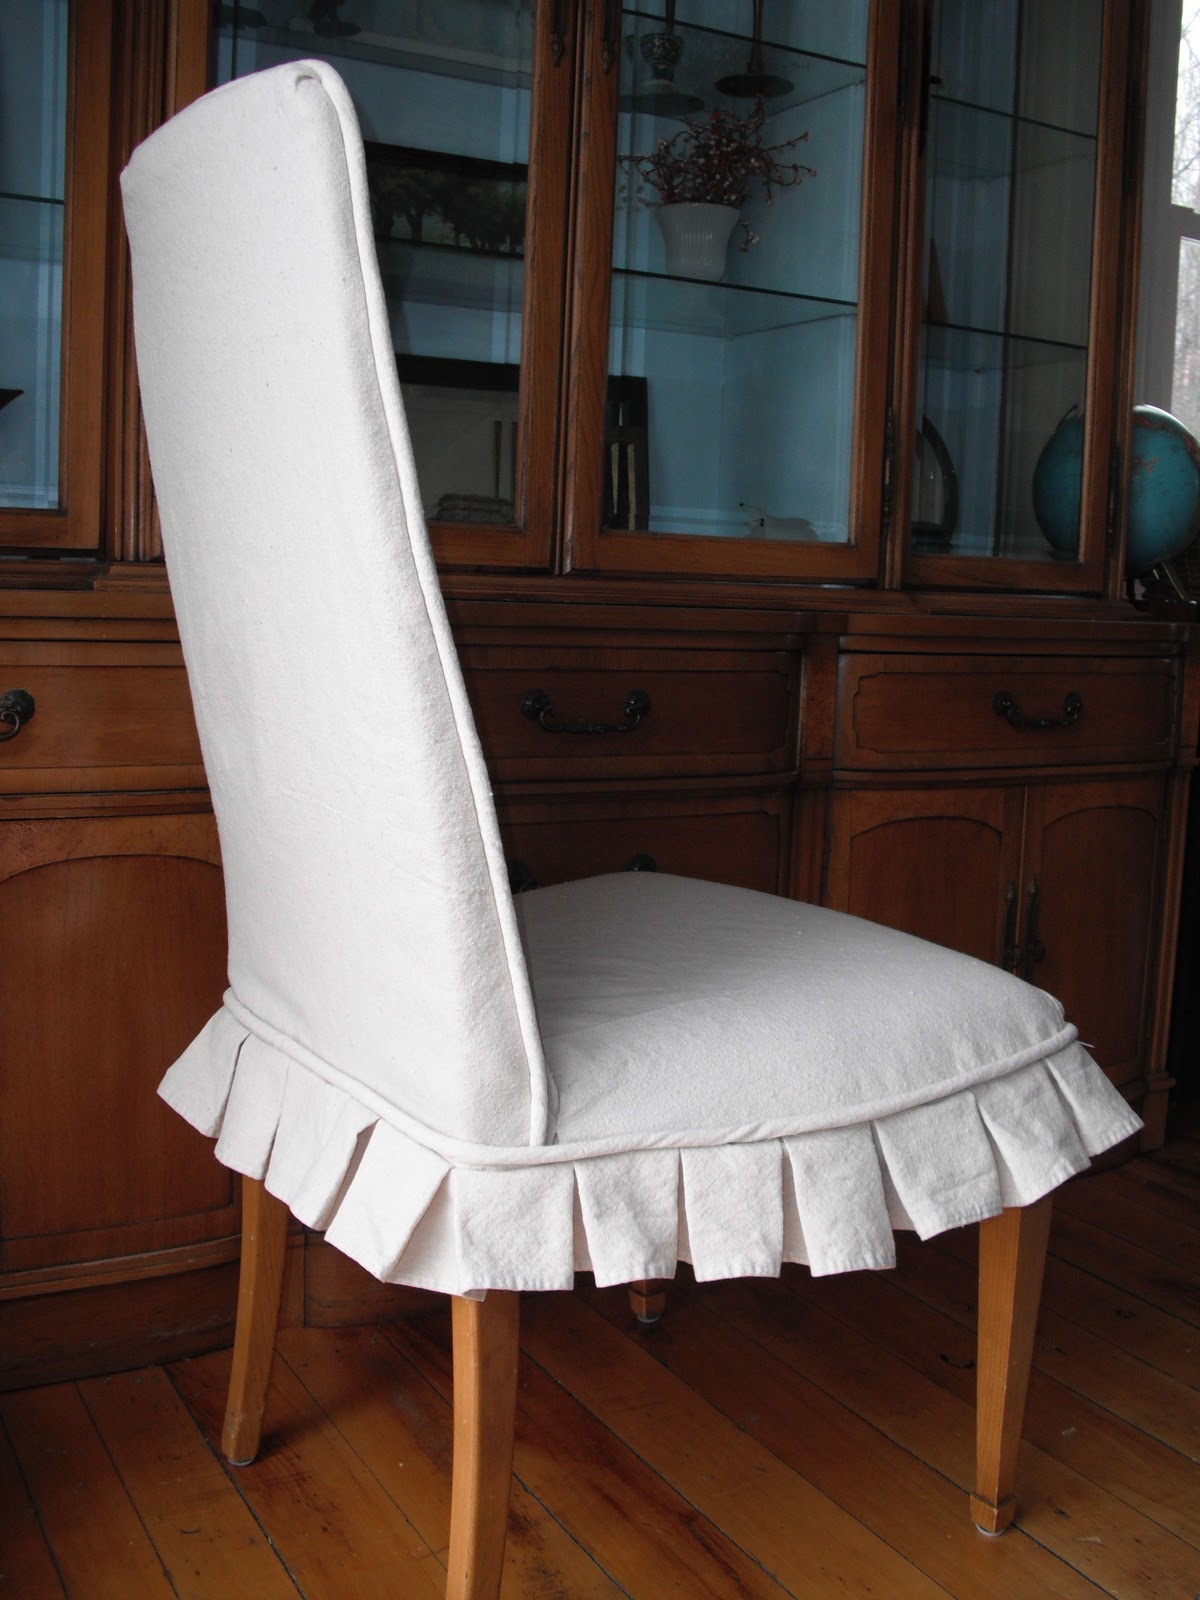 Couch Potato Slipcovers: Dining Chair Cover with Box ...